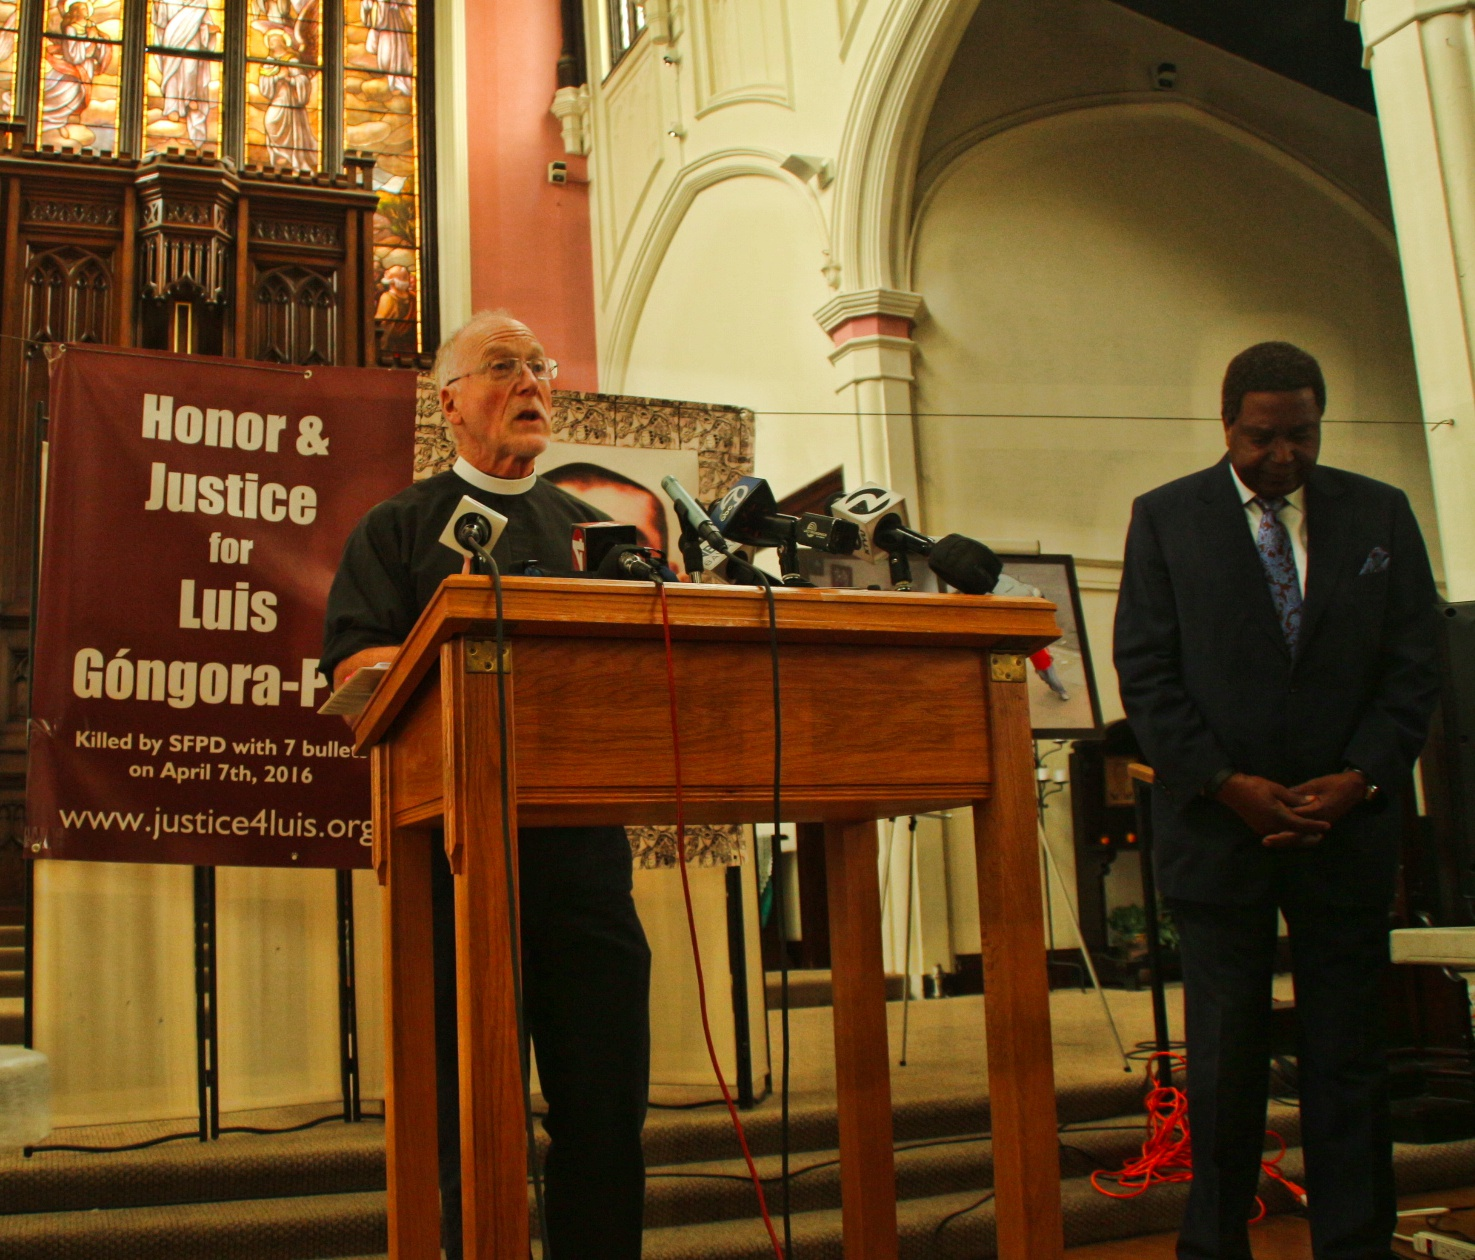 Father Richard Smith speaks at St Johns Episcopal Church on Friday as lawyers present evidence in Luis Gongora case. Photo by Sana Saleem